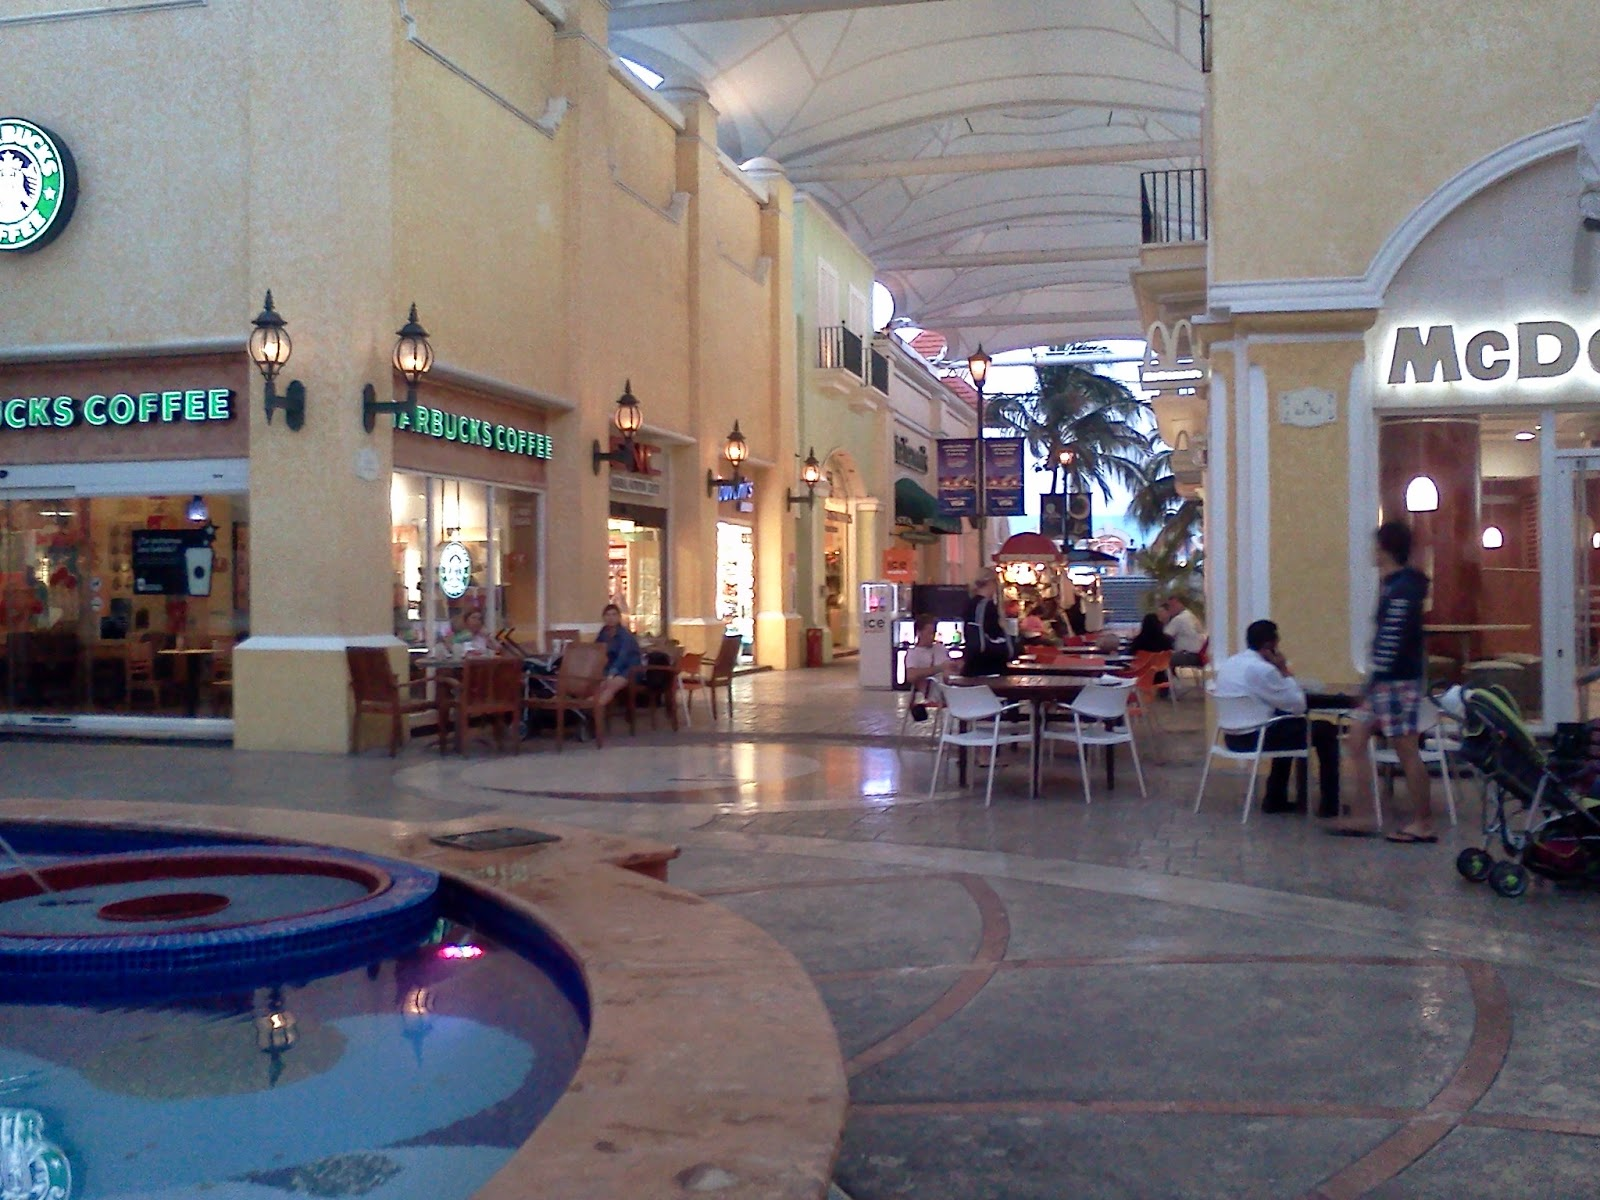 La Isla Mall View of Restaurants